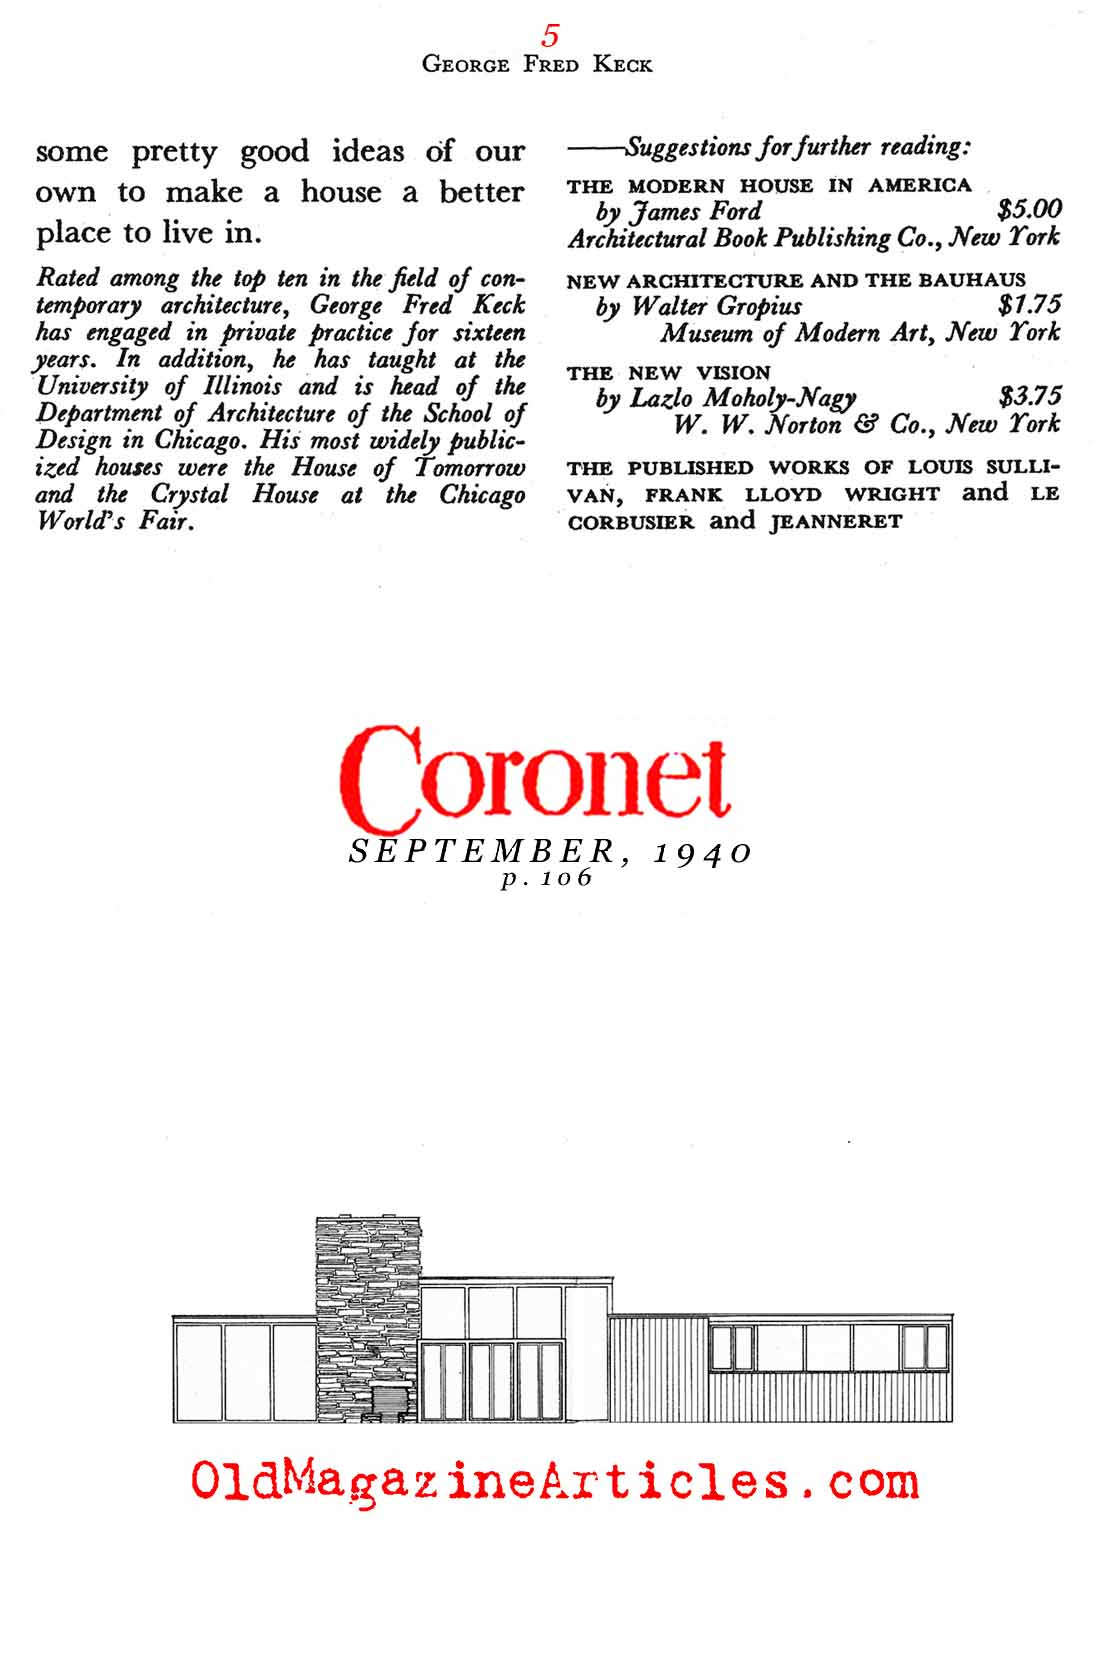 In Defense of Modern Architecture   (Coronet Magazine, 1940)